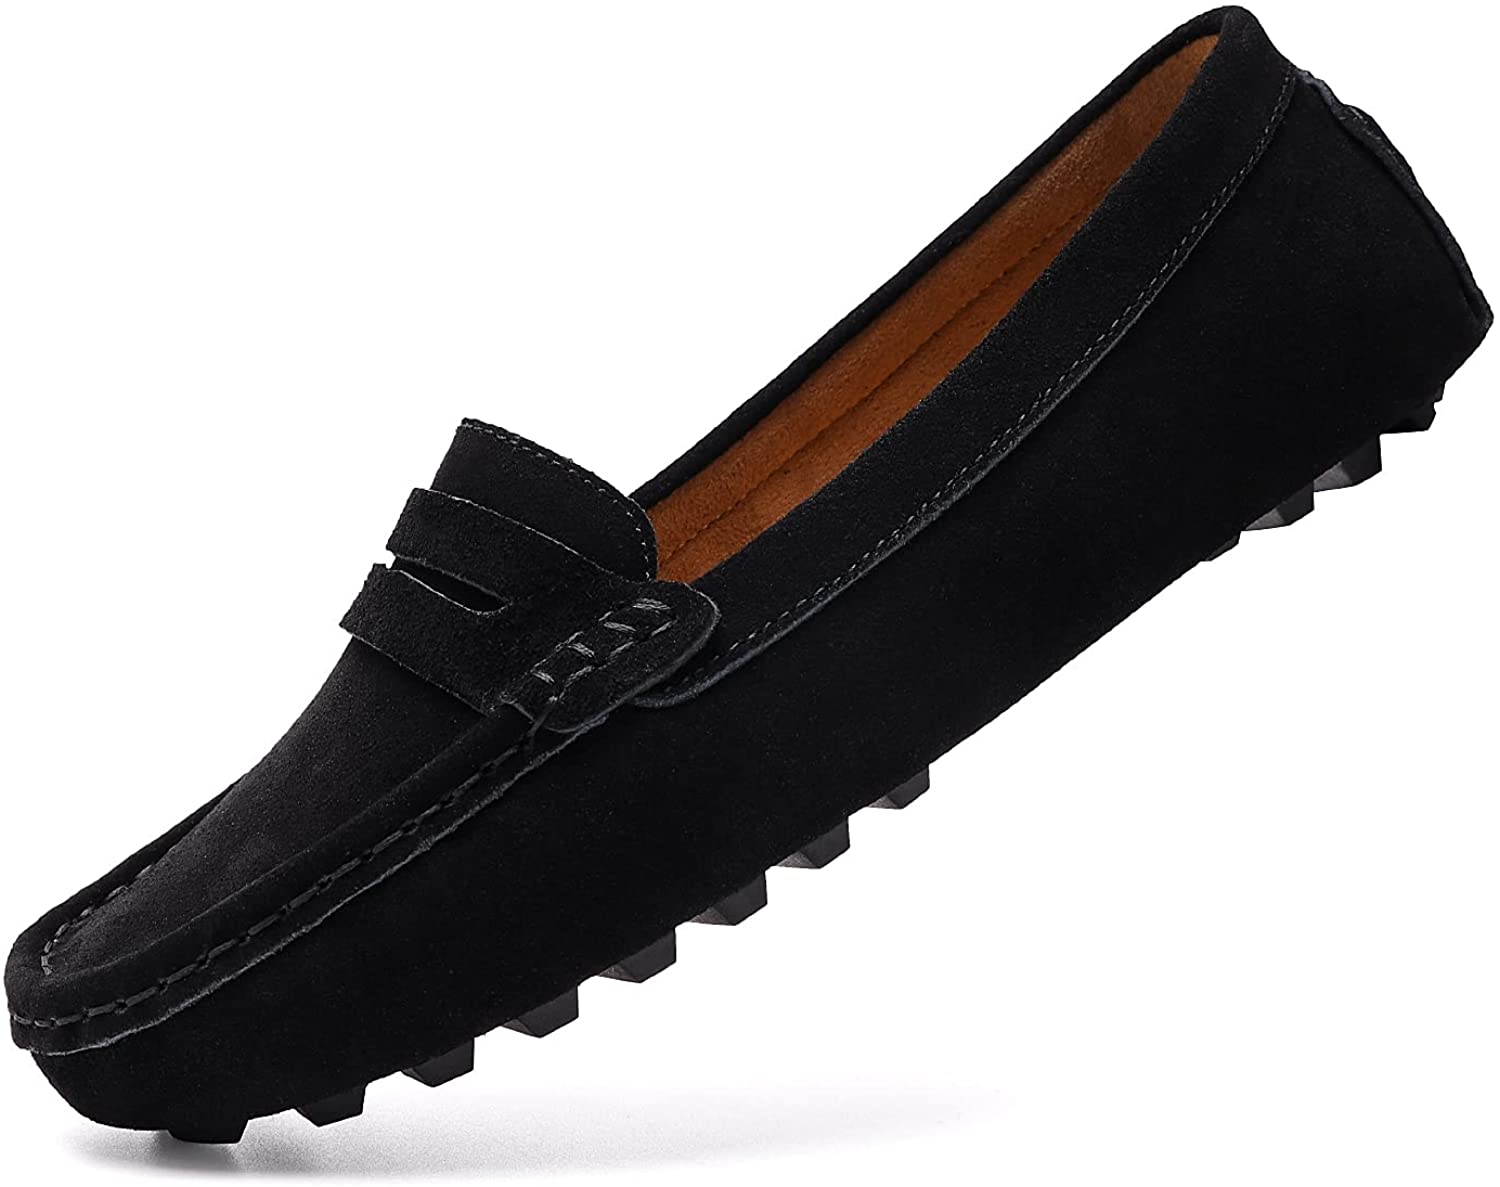 BEAUSEEN 35% OFF Women's Max 59% OFF Comfortable Suede Leather Penny Loafer Slip-on